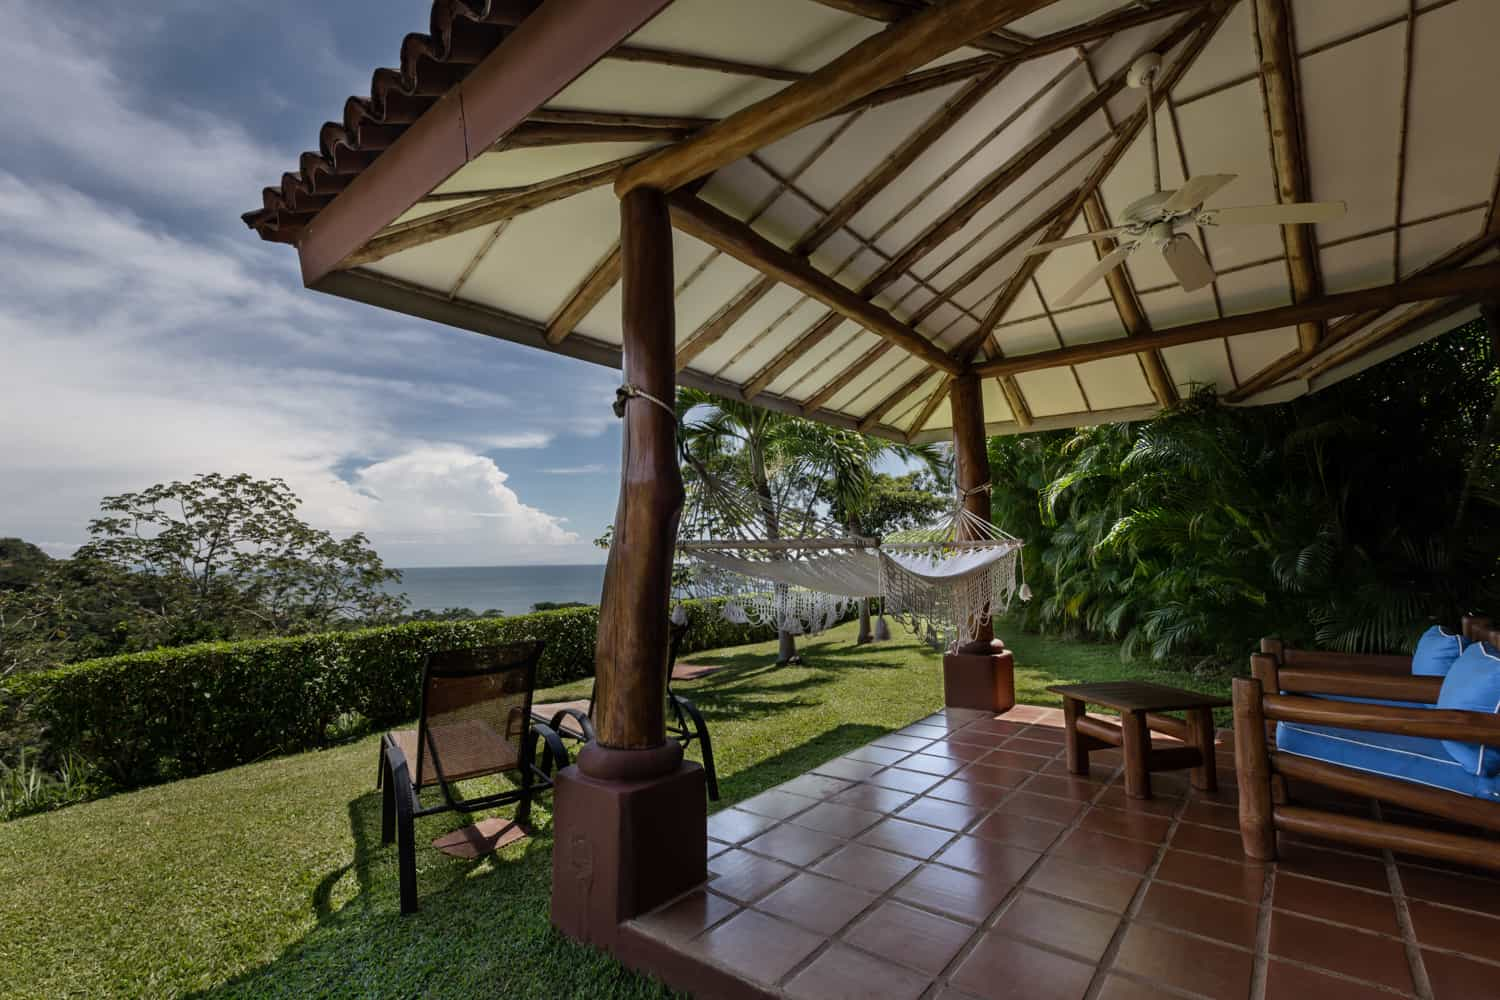 Garden & covered area with view of Pacific Ocean and mountains.